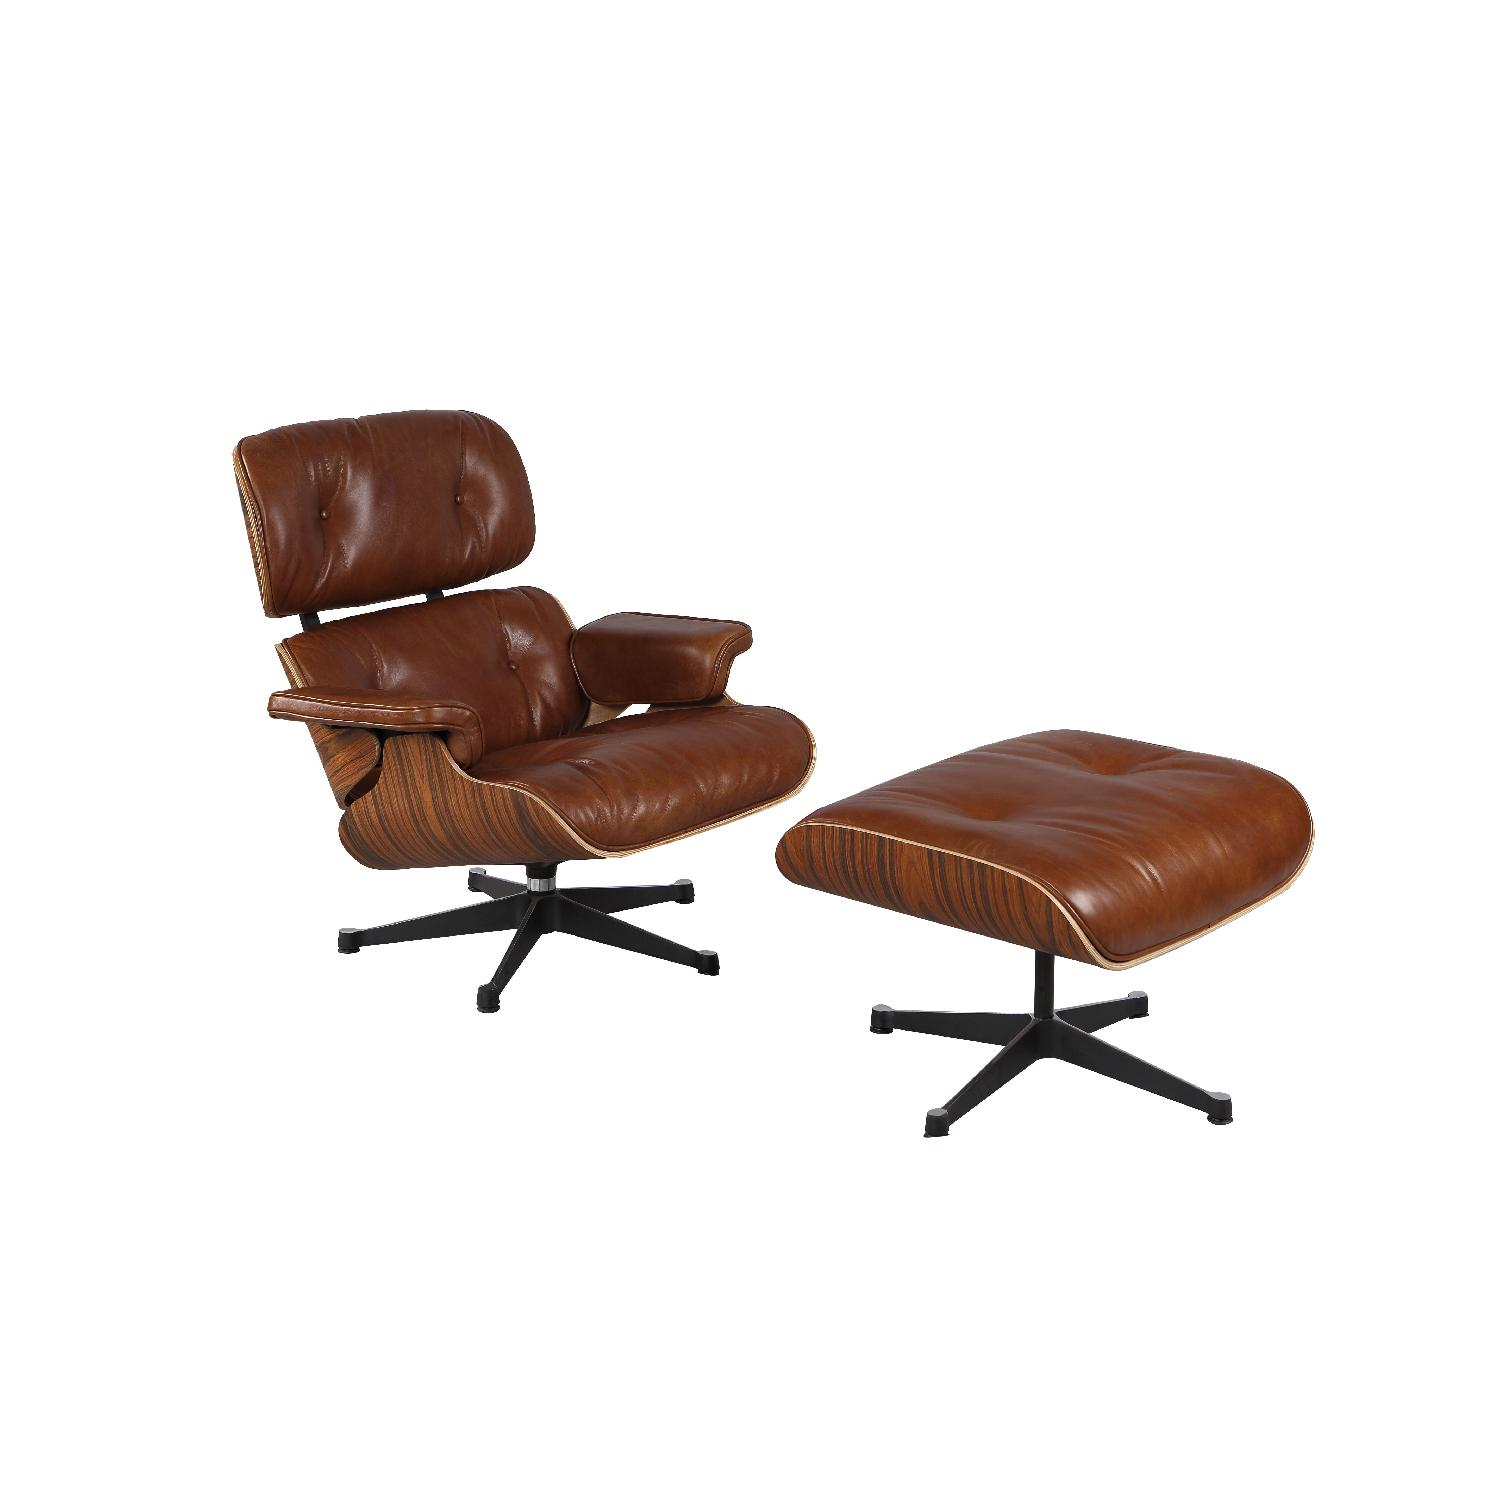 Mid Century Modern Classic Eames Lounge Chair Replica - AptDeco